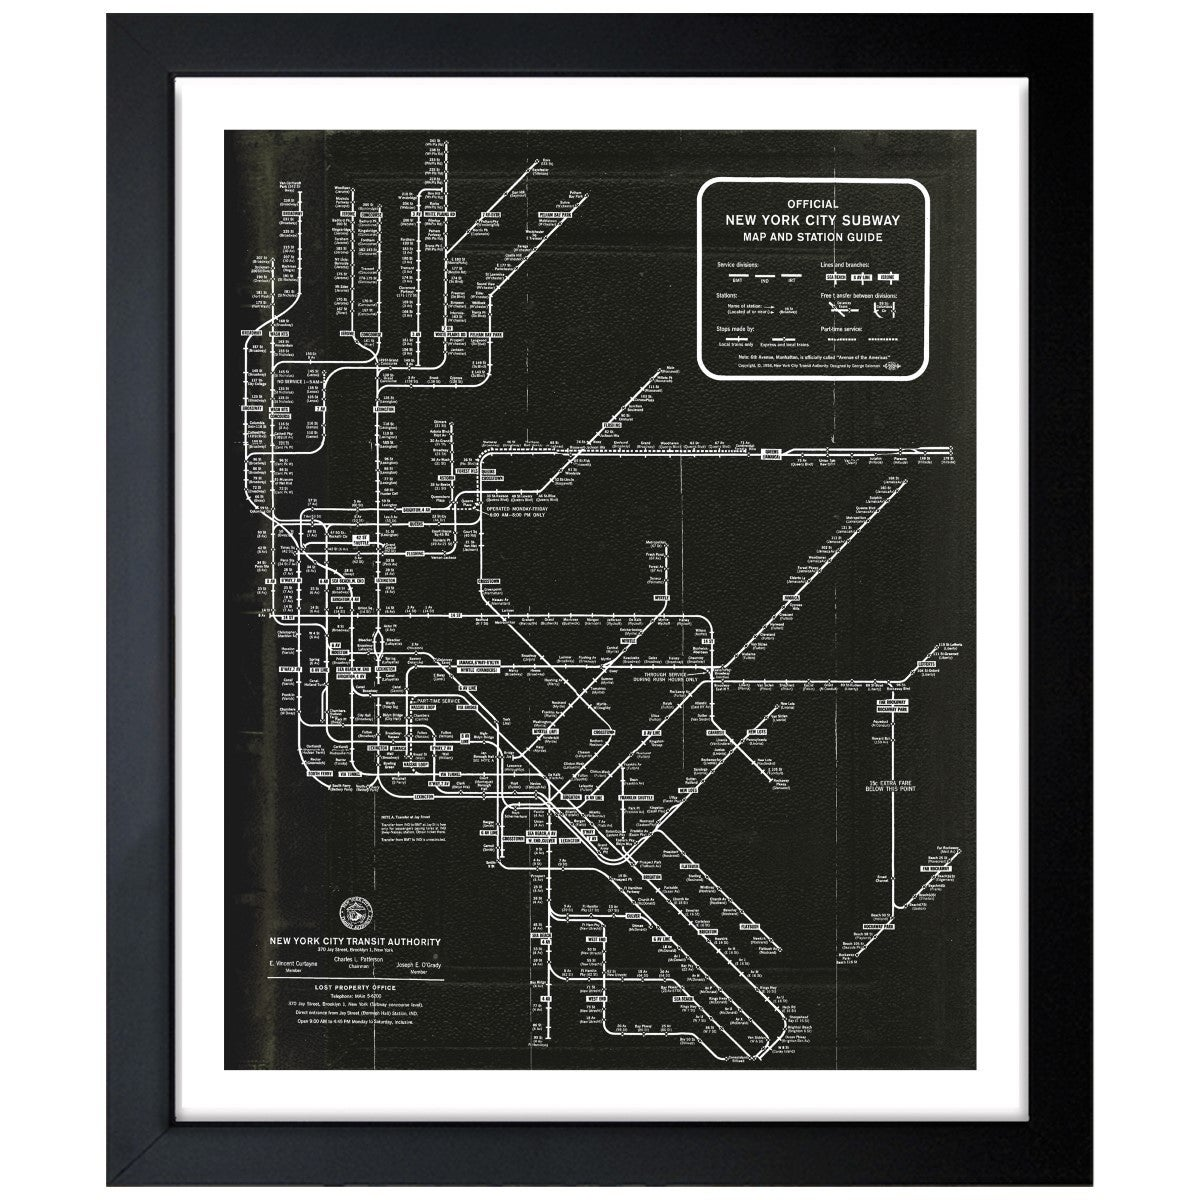 Framed New York Subway Map.Oliver Gal New York Subway Map 1958 Framed Art